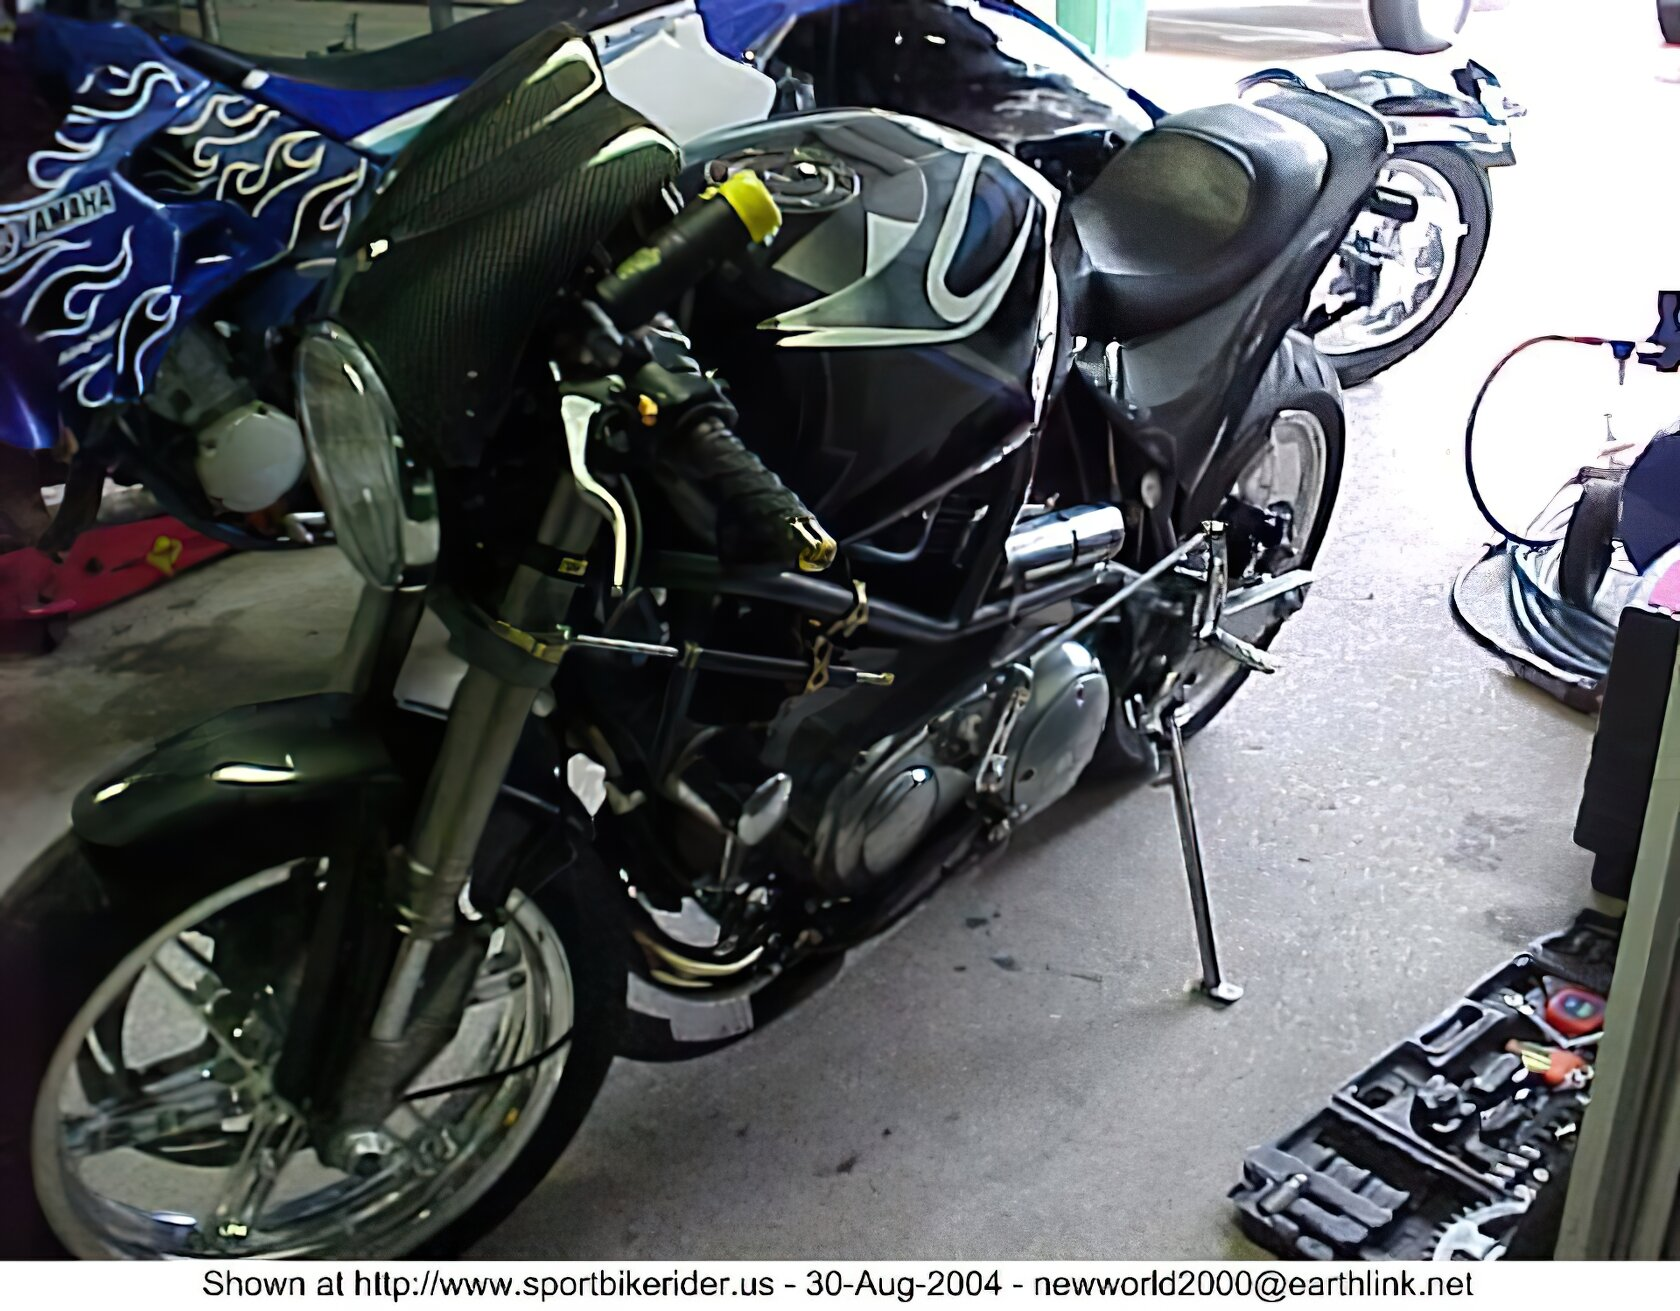 Buell S1/S2/S3 - ID: 61868